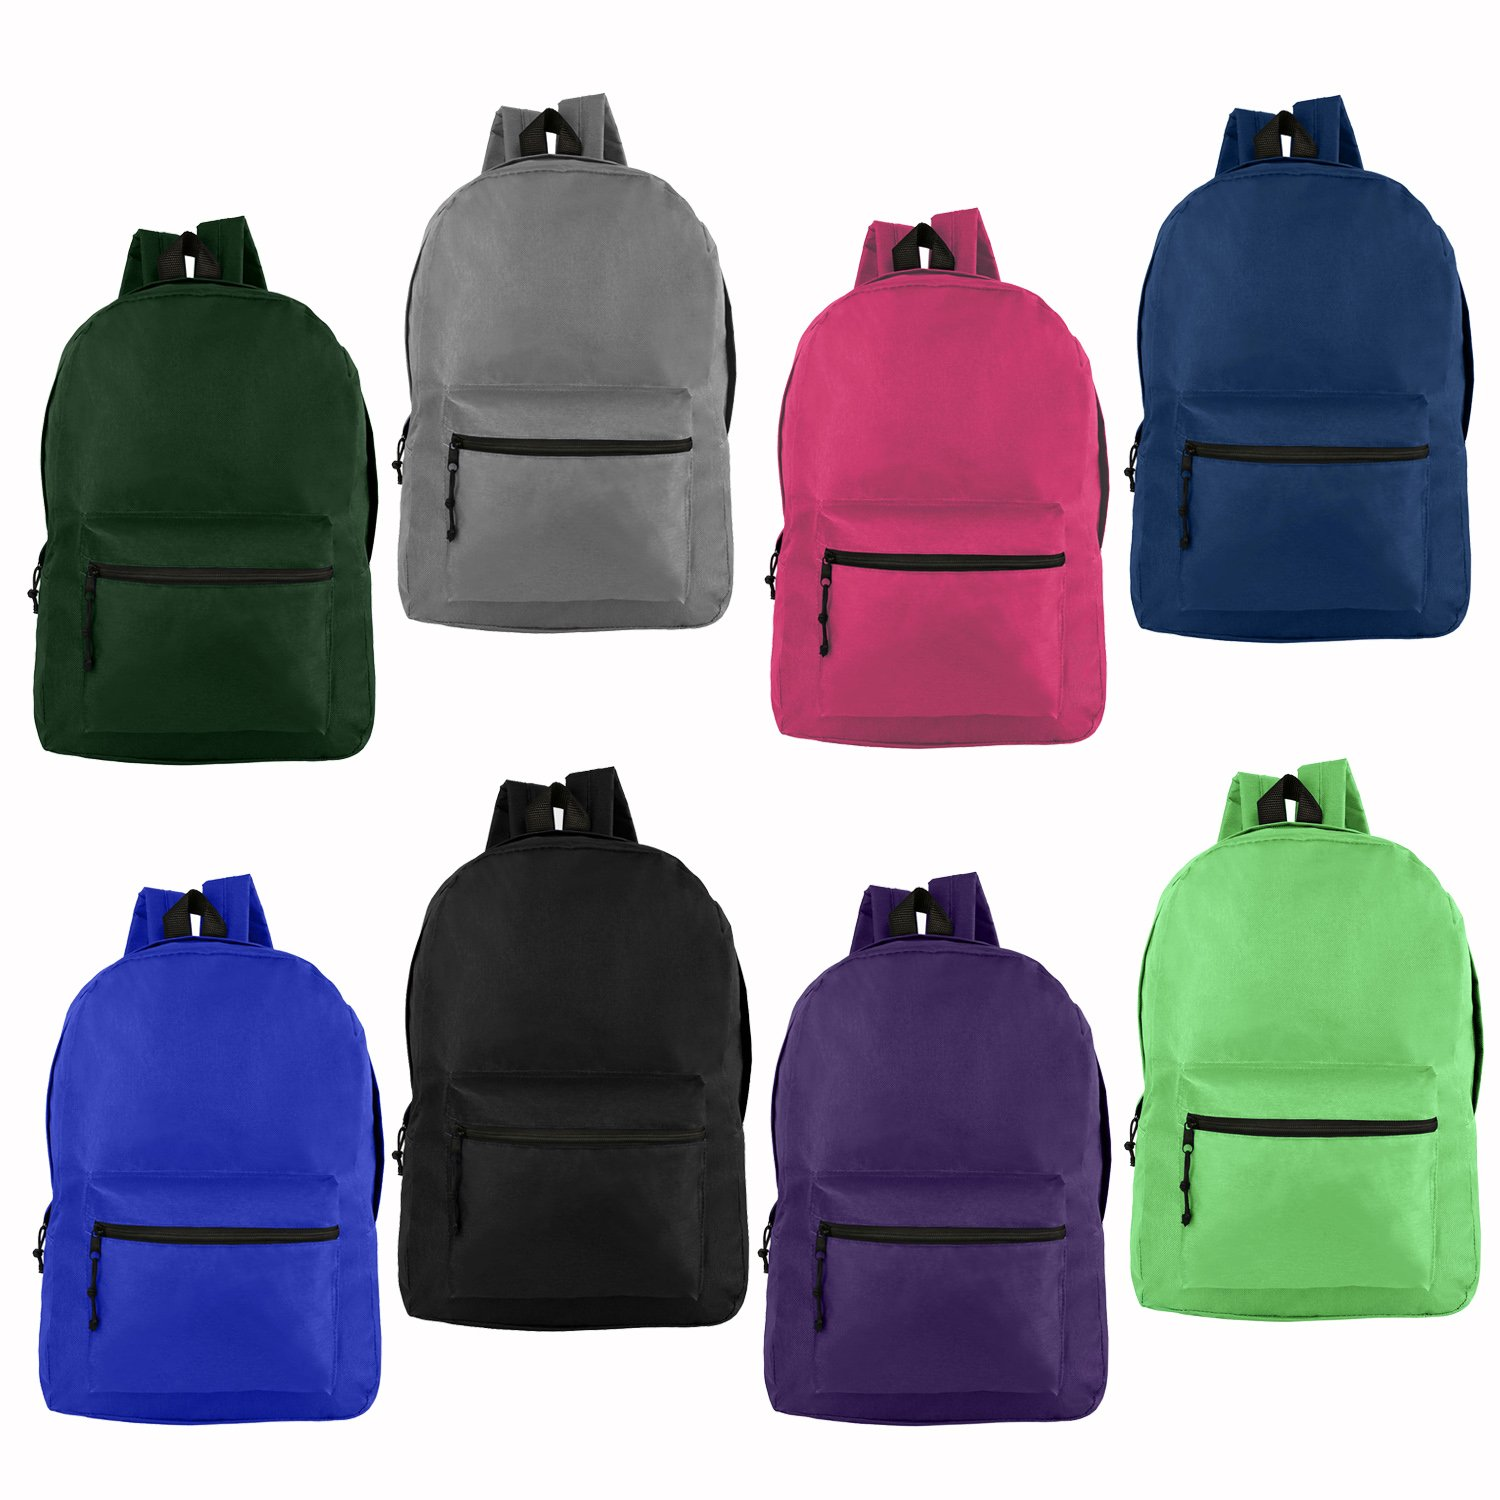 Wholesale 17'' Backpacks for Kids & Adults - Bulk Case of 24 Bookbags - 8 Assorted Colors